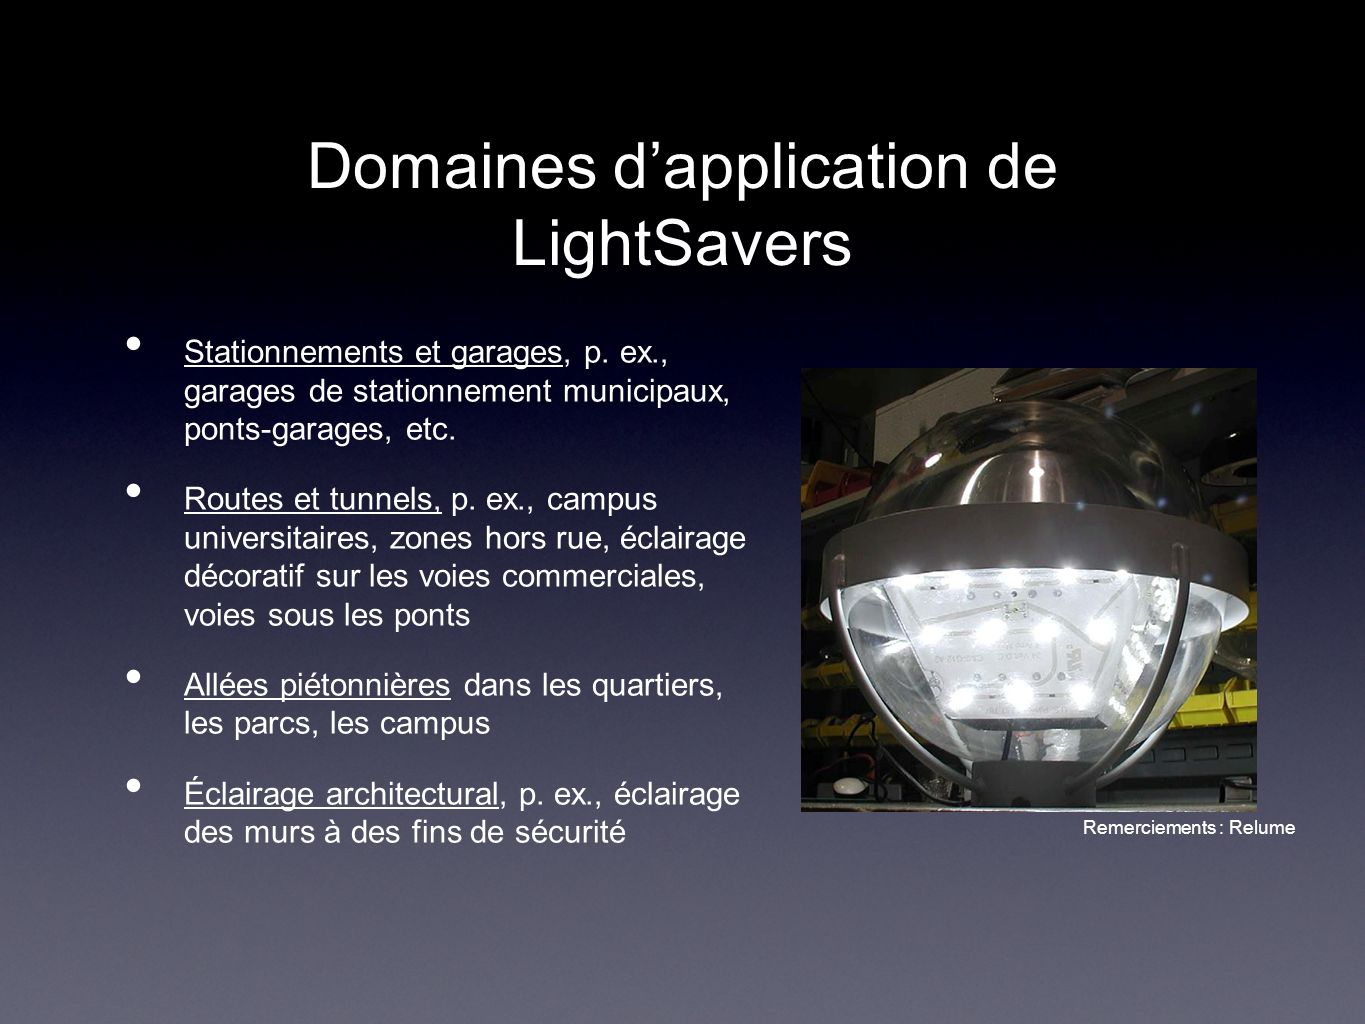 Domaines d'application de LightSavers